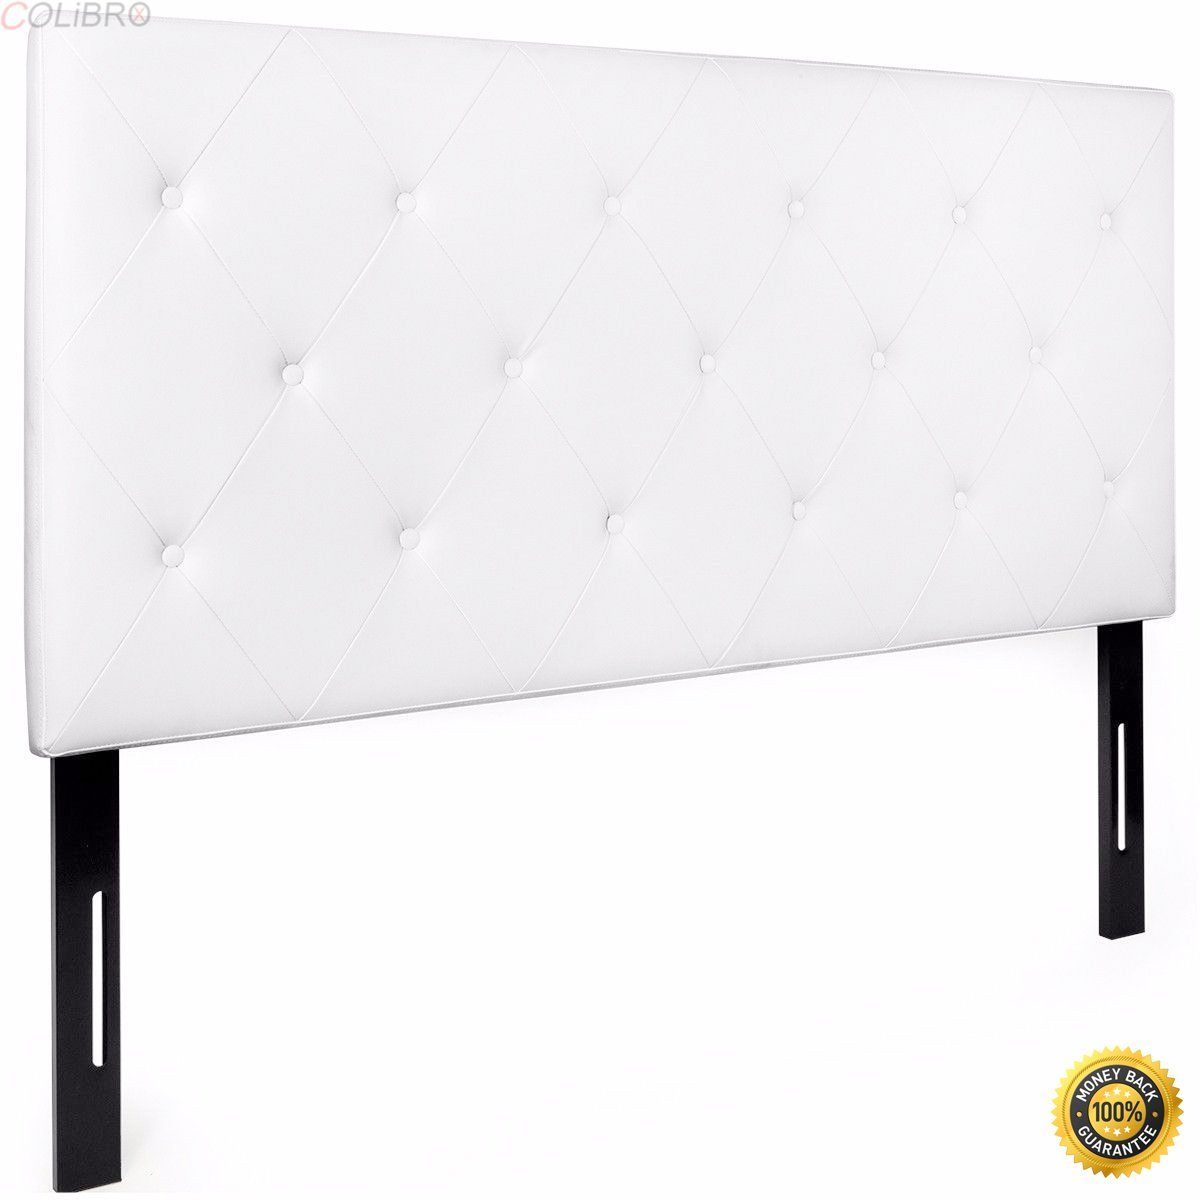 COLIBROX--Upholstered Tufted diamond button Headboard Queen Modern pu leather Bedroom,queen headboards,upholstered headboards queen,queen size headboards,cheap queen headboards